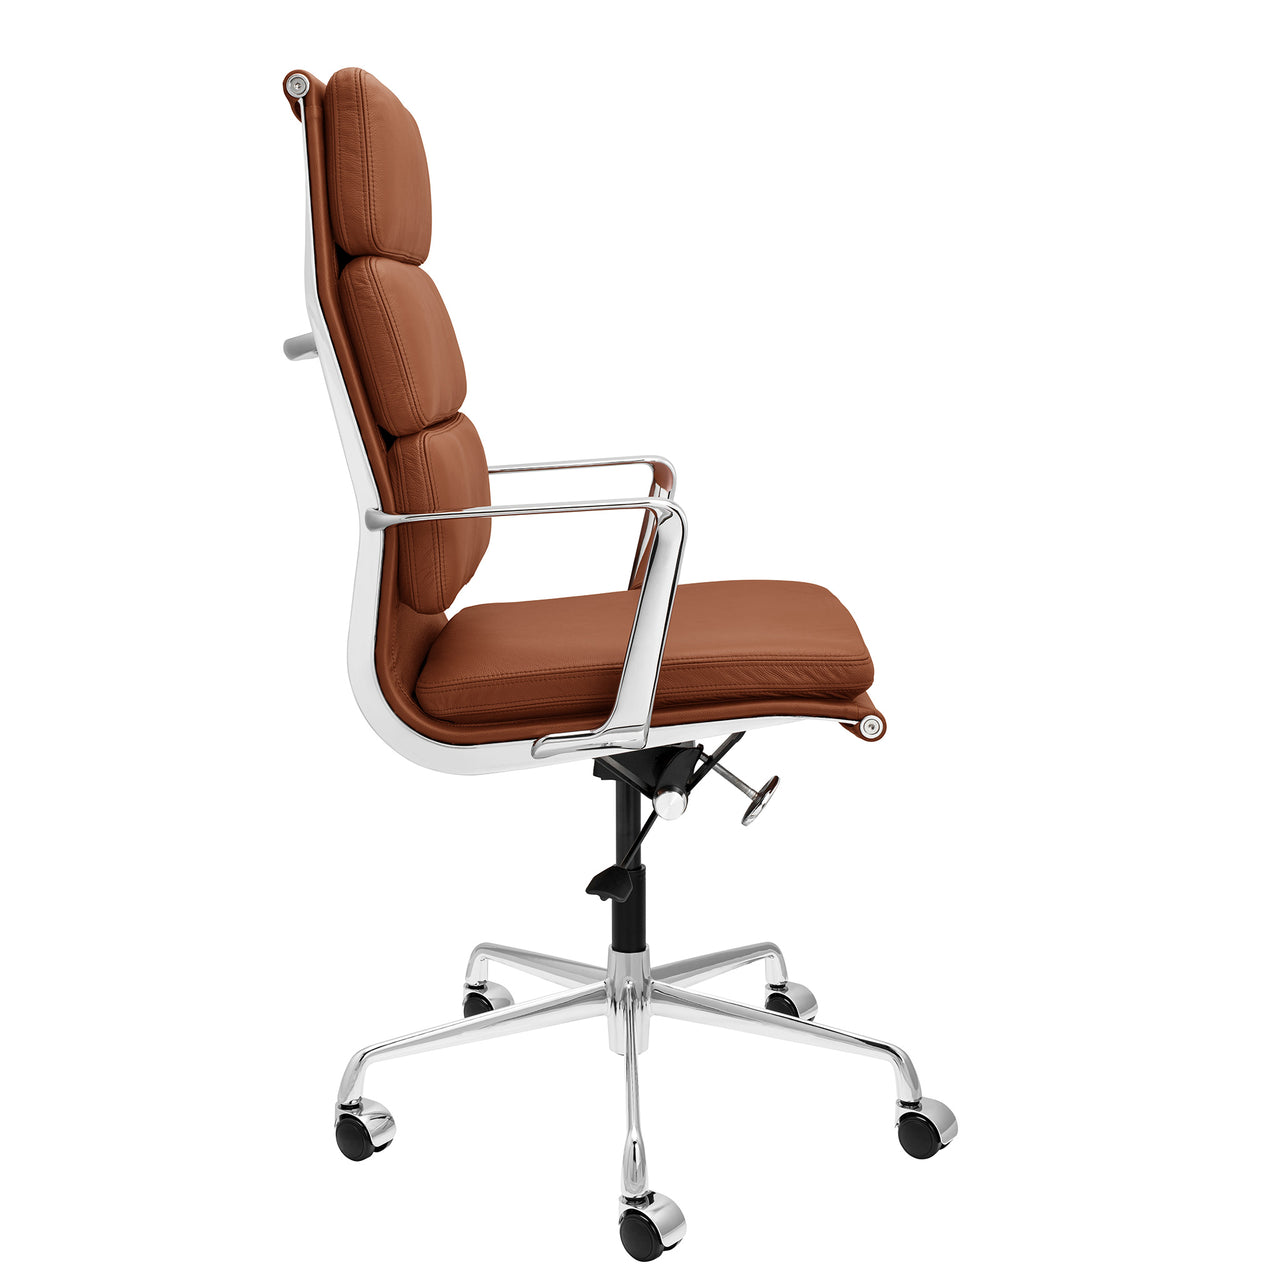 SOHO Pro Tall Back Soft Pad Management Chair (Brown Italian Leather)